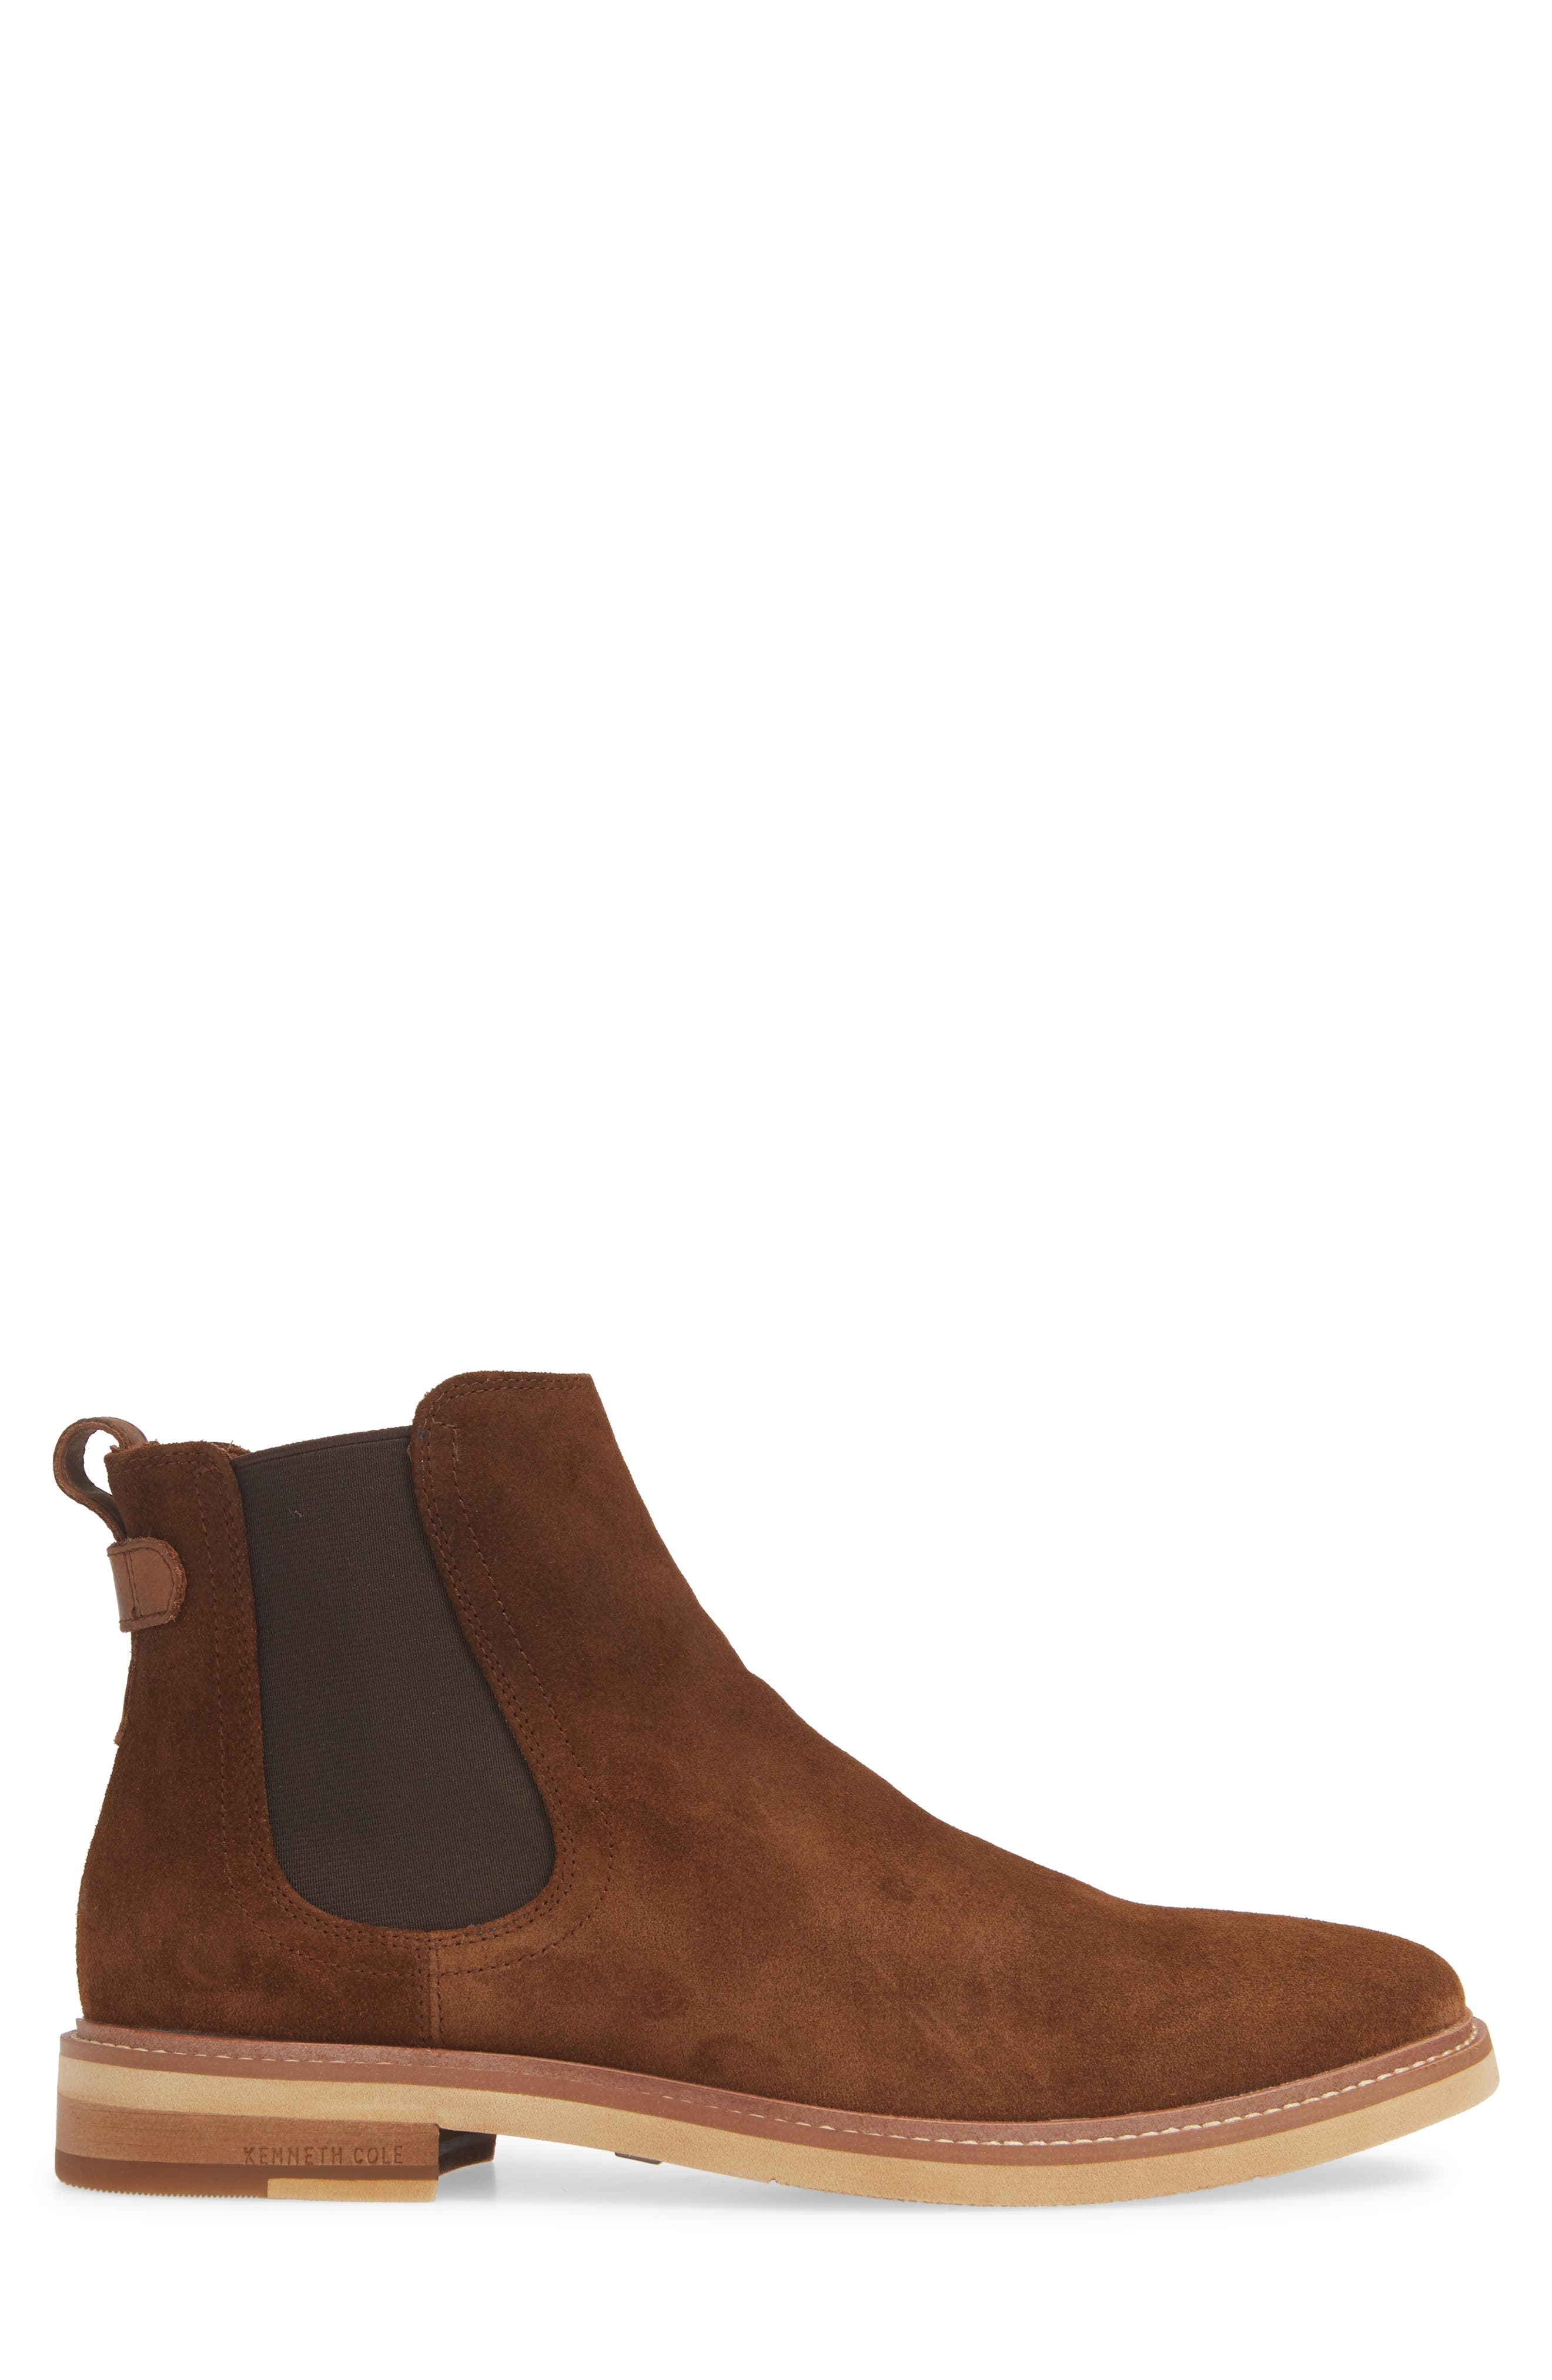 Whistler Mid Chelsea Boot,                             Alternate thumbnail 3, color,                             TOBACCO SUEDE